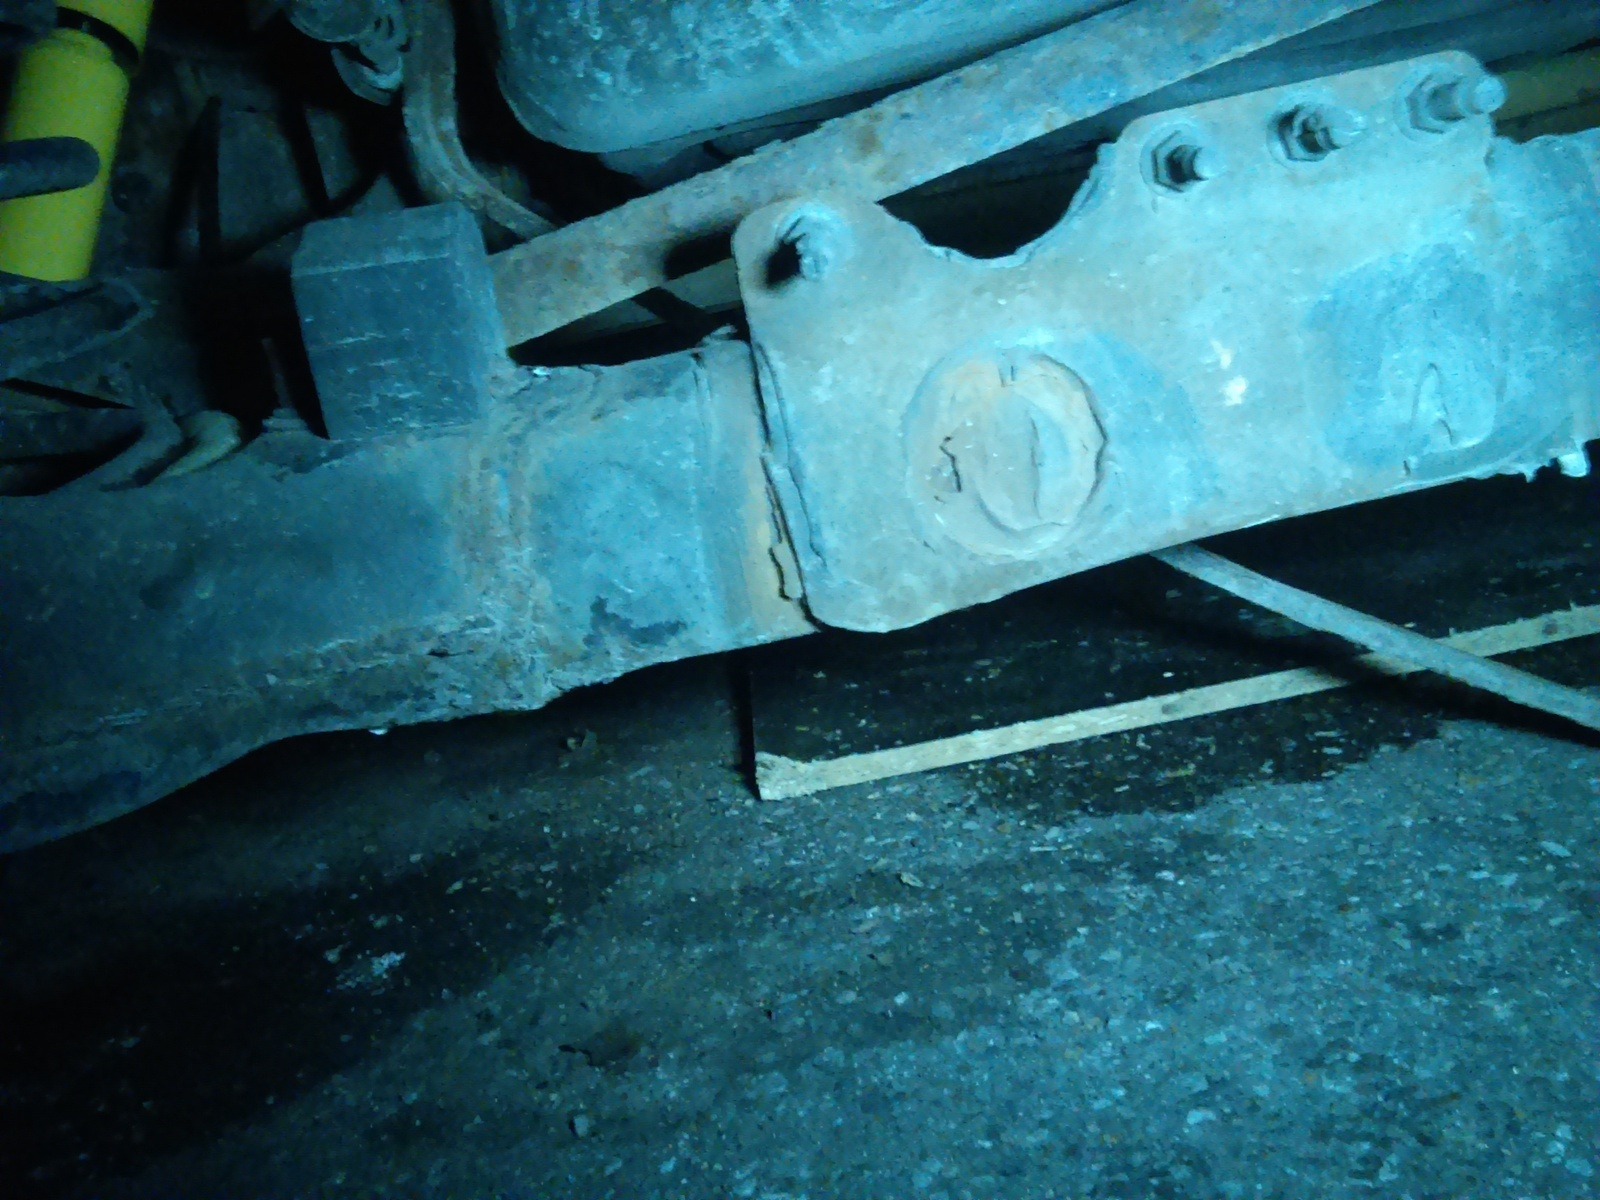 Ford Windstar Questions Anybody Have Their Windstar's Rear Axle Or. Ford Windstar Questions Anybody Have Their Windstar's Rear Axle Or Subframe Mounts To Breakfa Cargurus. Ford. 2002 Ford Windstar Frame Diagram At Scoala.co